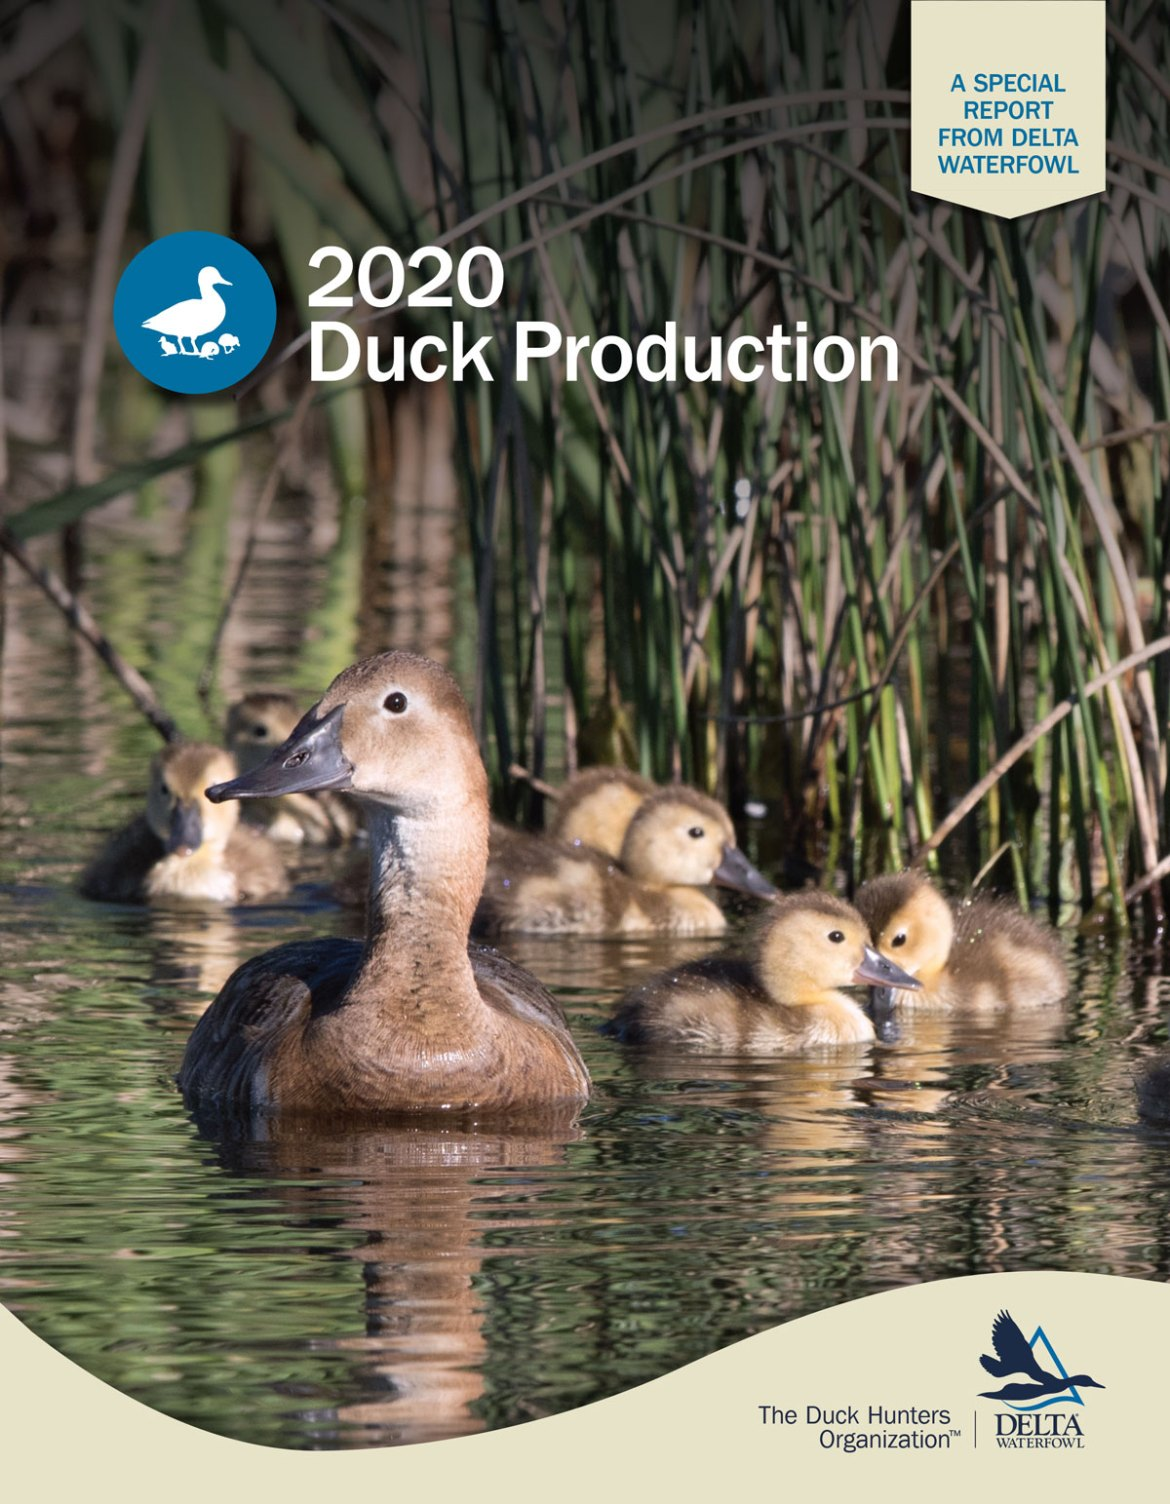 Duck Production 2020 report cover. Image shows a mother hen with her ducklings paddling on the water. Outdoors and in nature.